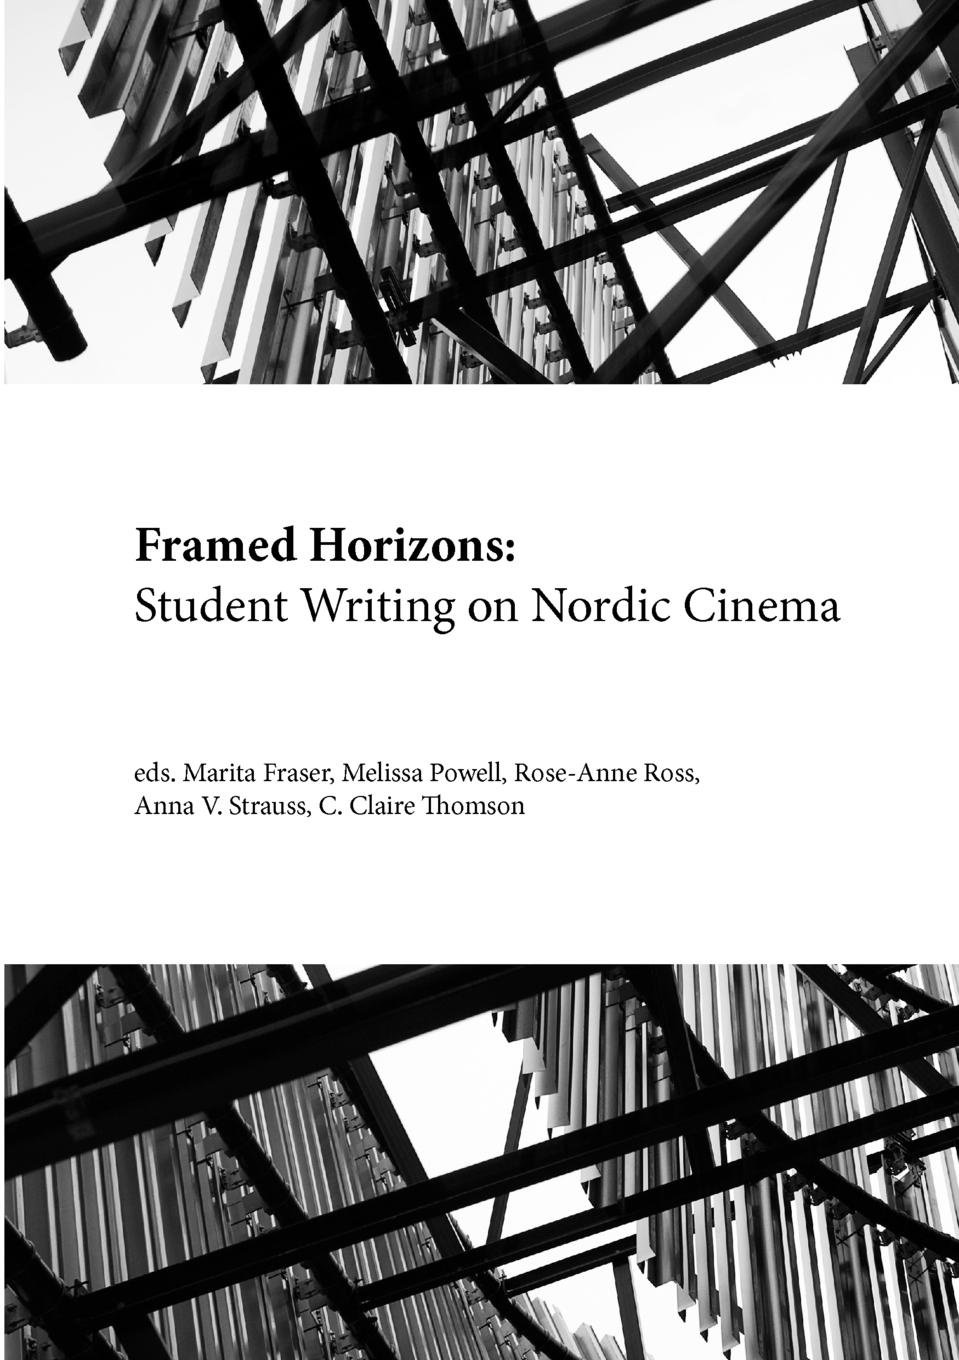 mette hjort a companion to nordic cinema Framed Horizons. Student Writing on Nordic Cinema